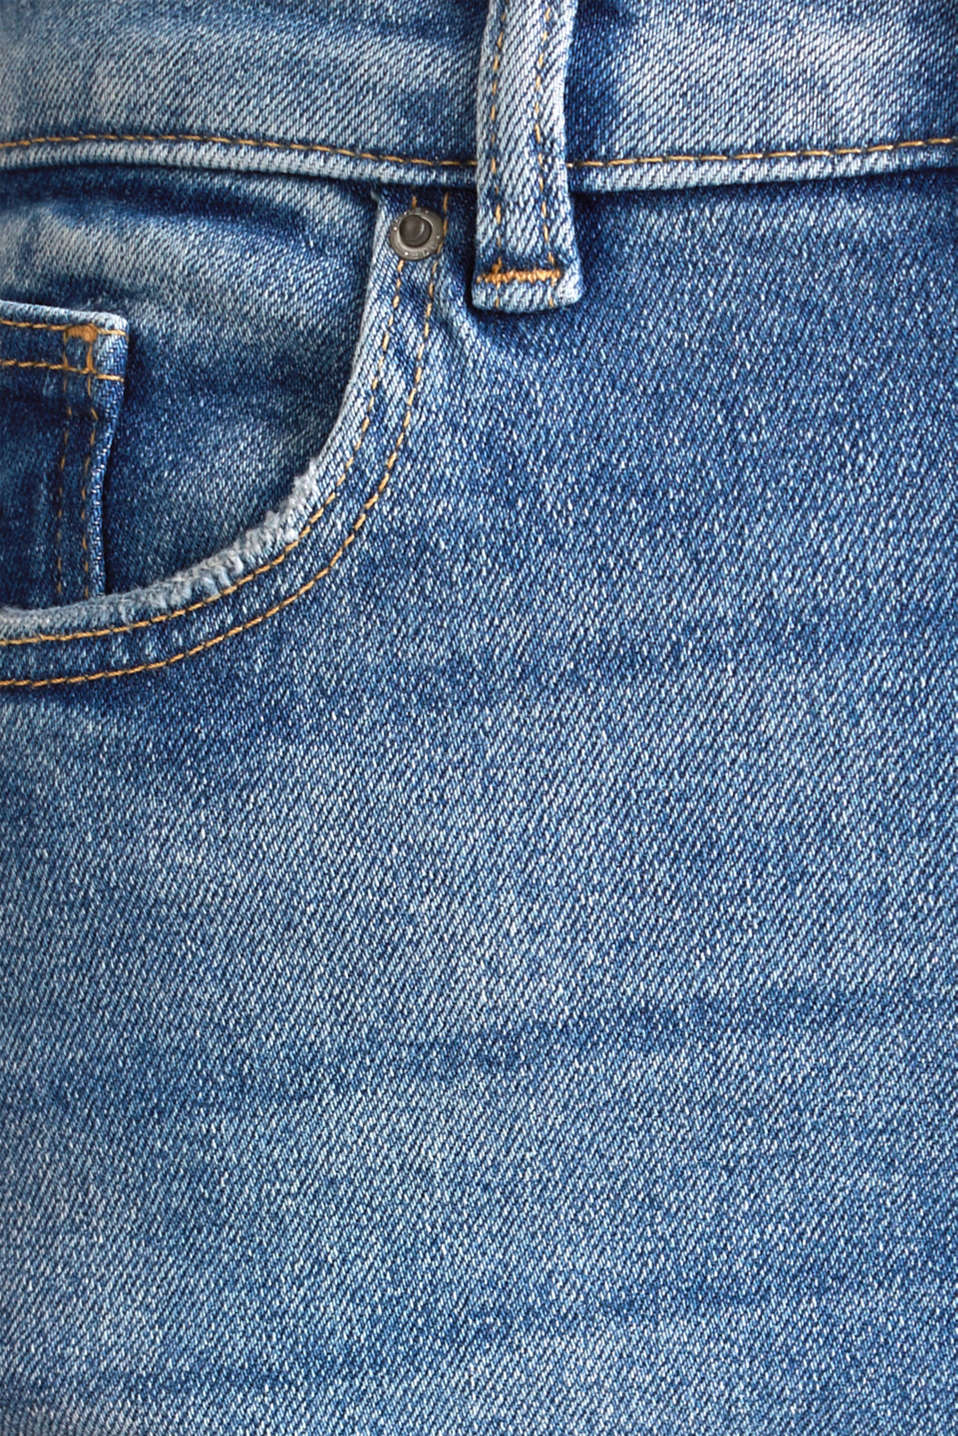 Jeans with an extra high rise waistband, BLUE MEDIUM WASH, detail image number 4